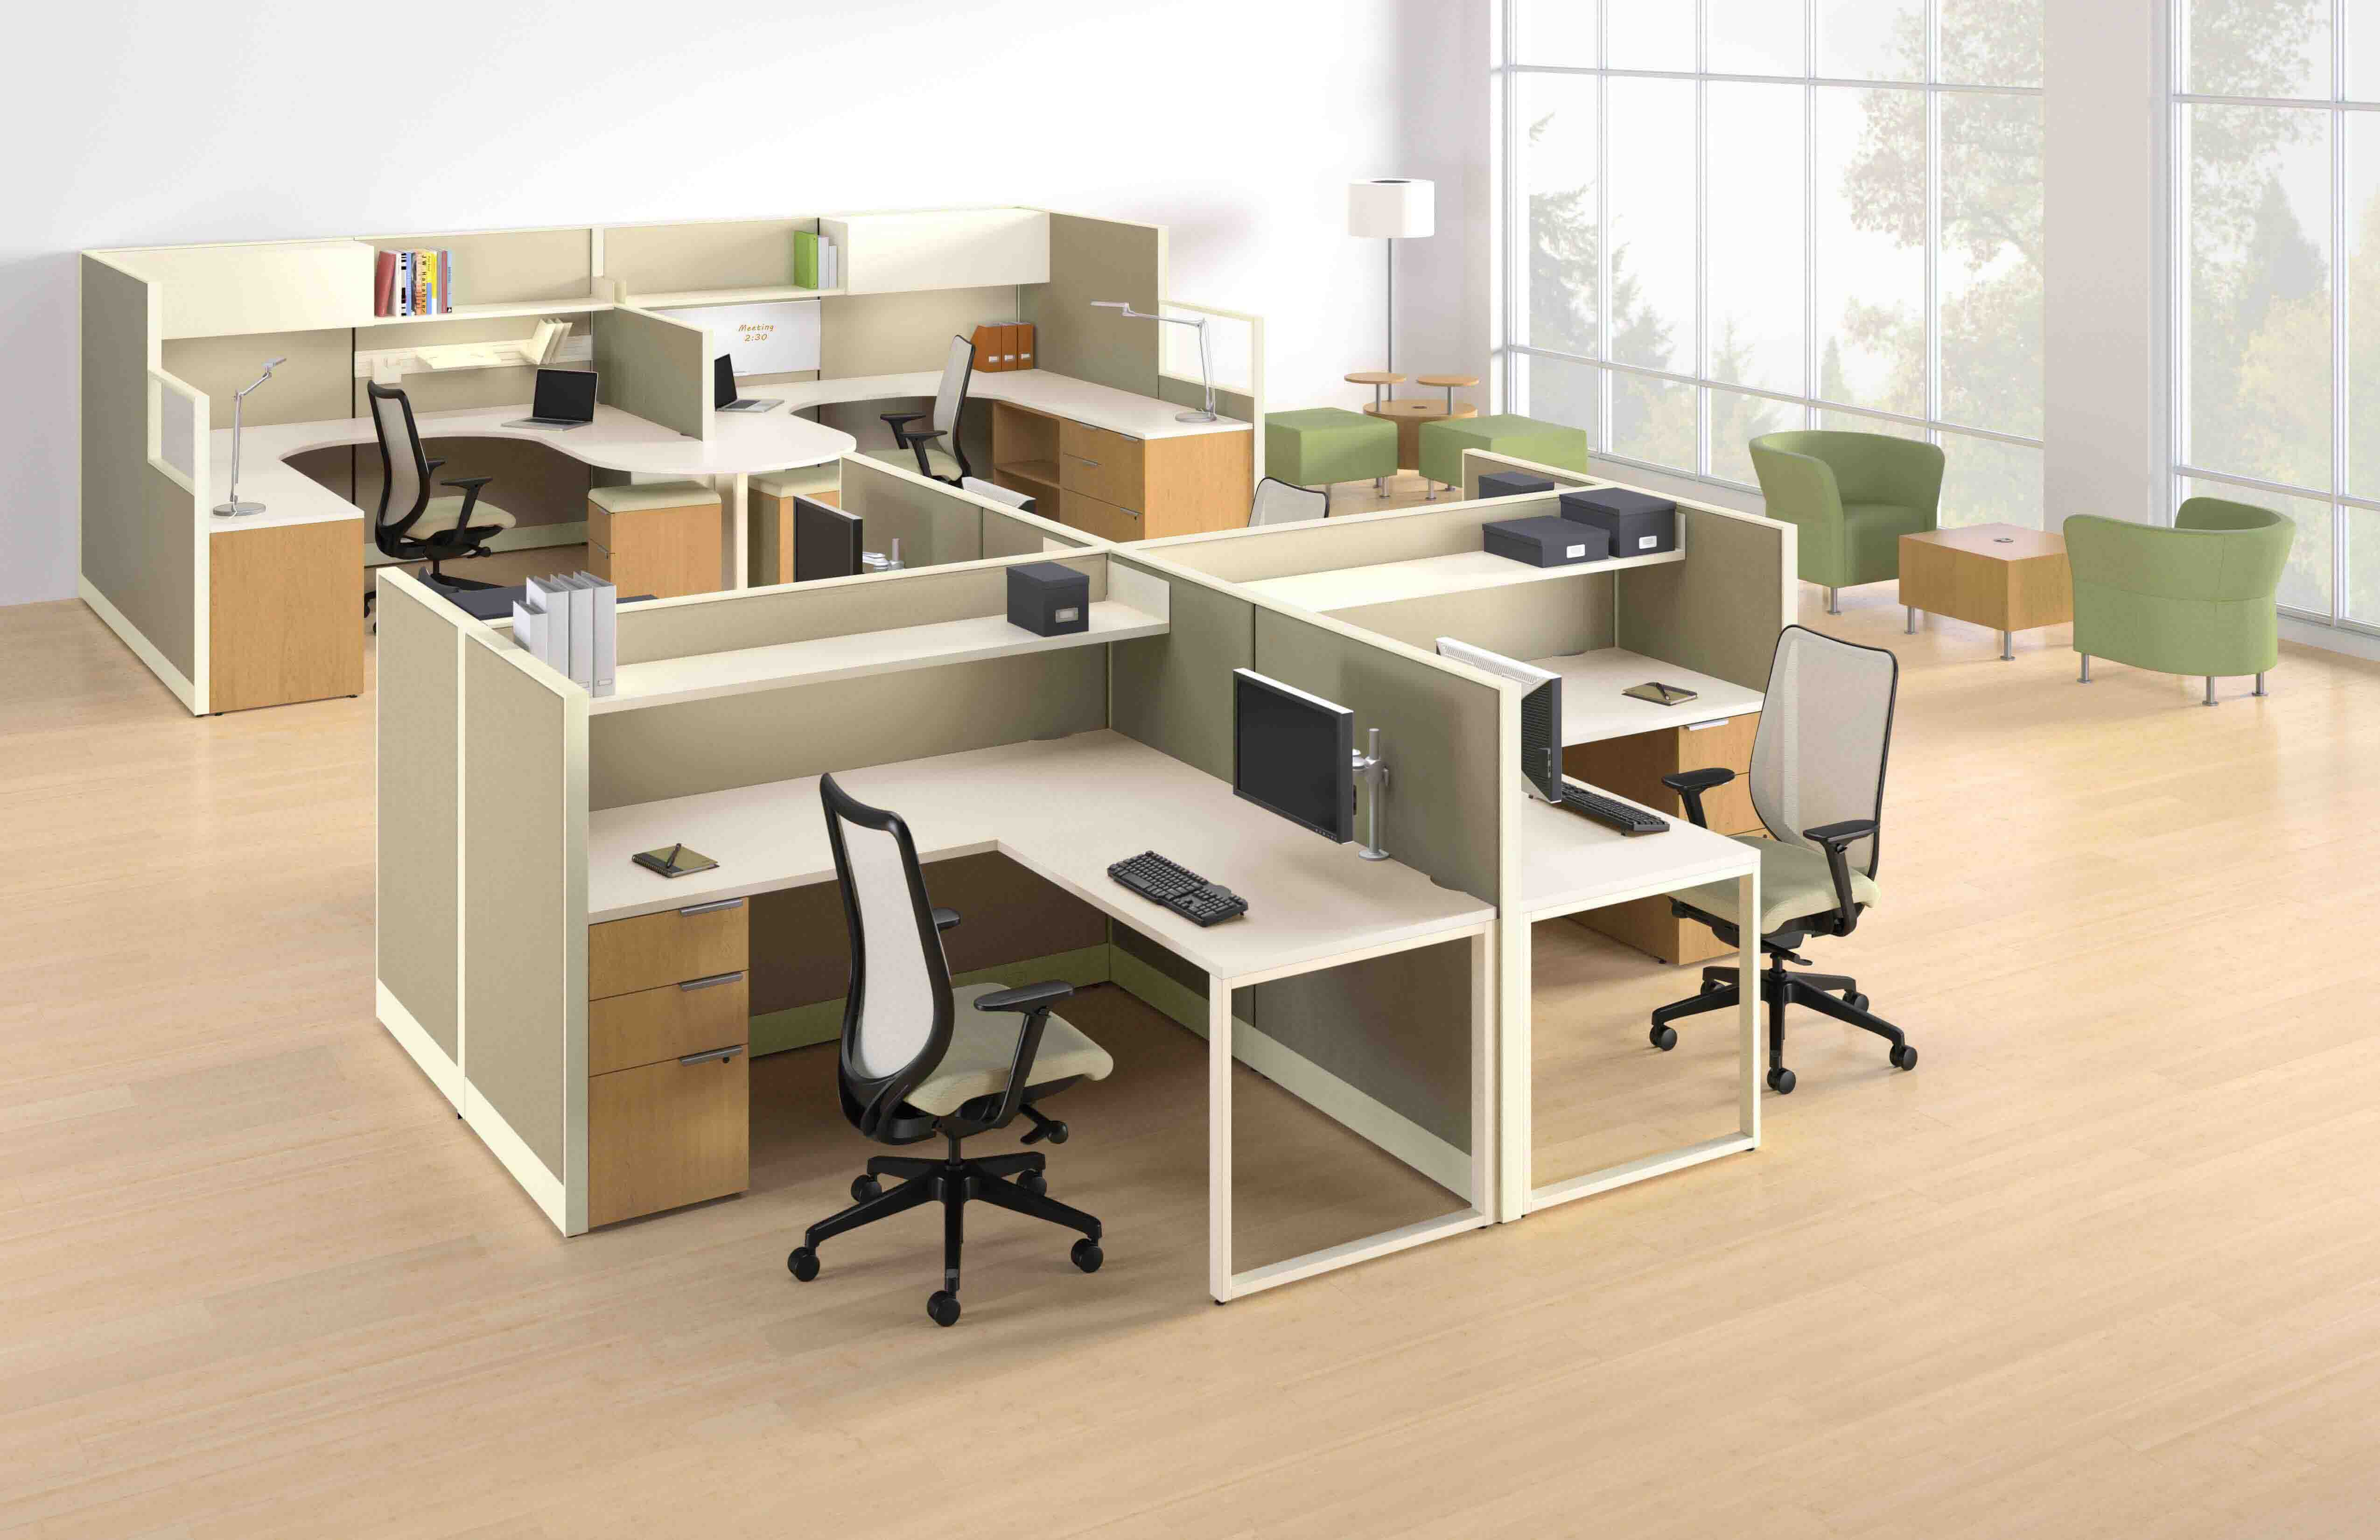 OFFICE  FLOOR SPACE, WITH EXCLUSIVE AND DYNAMIC WORKSTATION DESIGNS